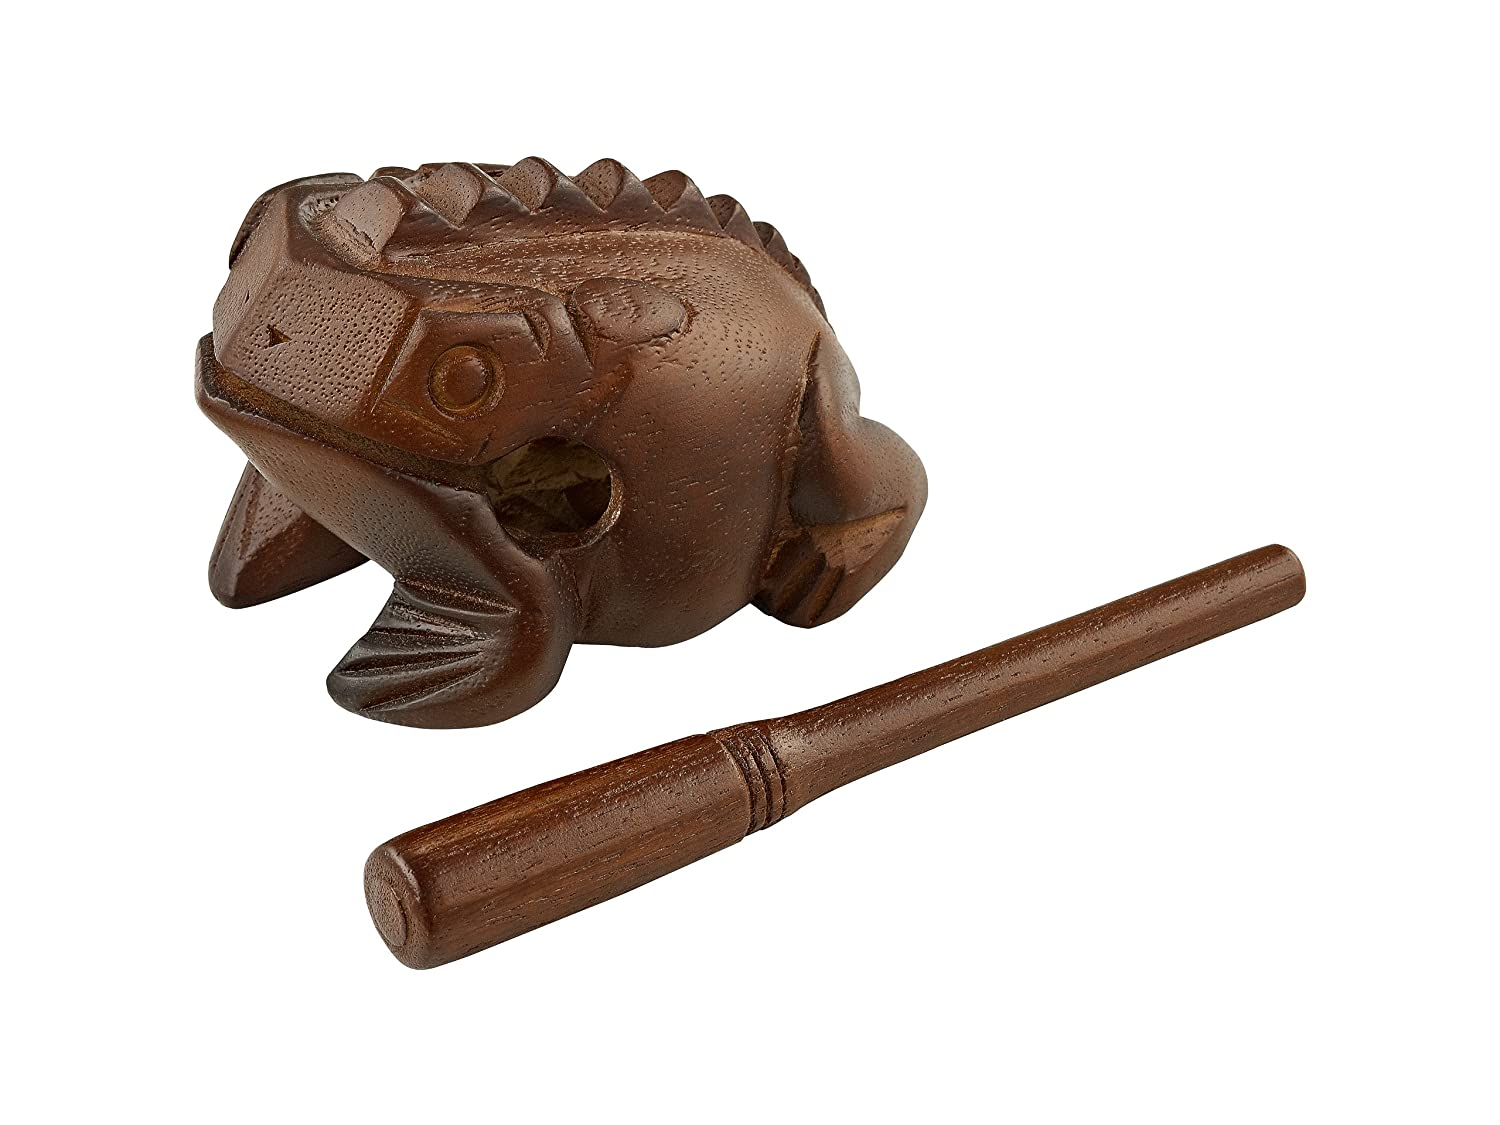 Meinl Percussion FROG-L Large Wooden Frog Guiro, African Brown